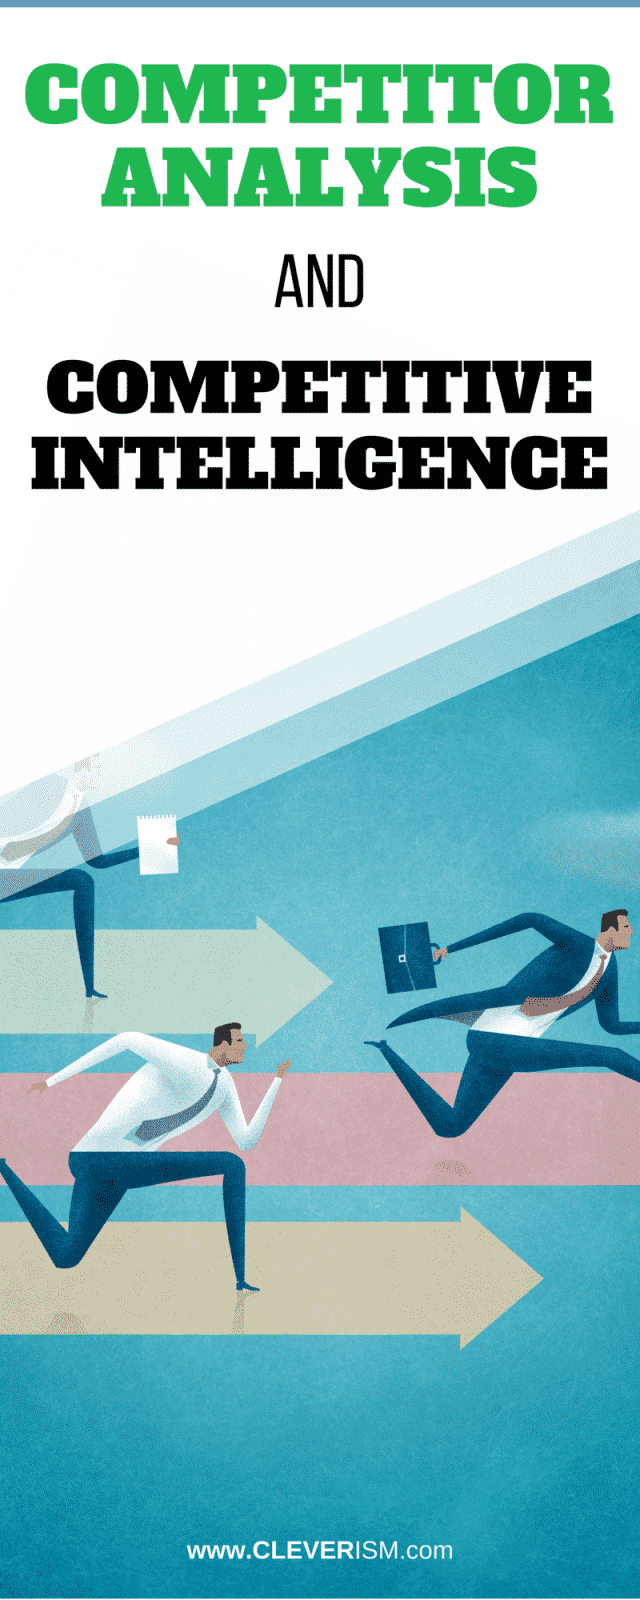 an analysis of an article on competitive intelligence Students who are interested in topics like intelligence analysis, business intelligence, national and foreign security, counterintelligence, and data analysis may be interested in pursuing a degree in competitive intelligence degree programs in this field are more commonly offered at the graduate.